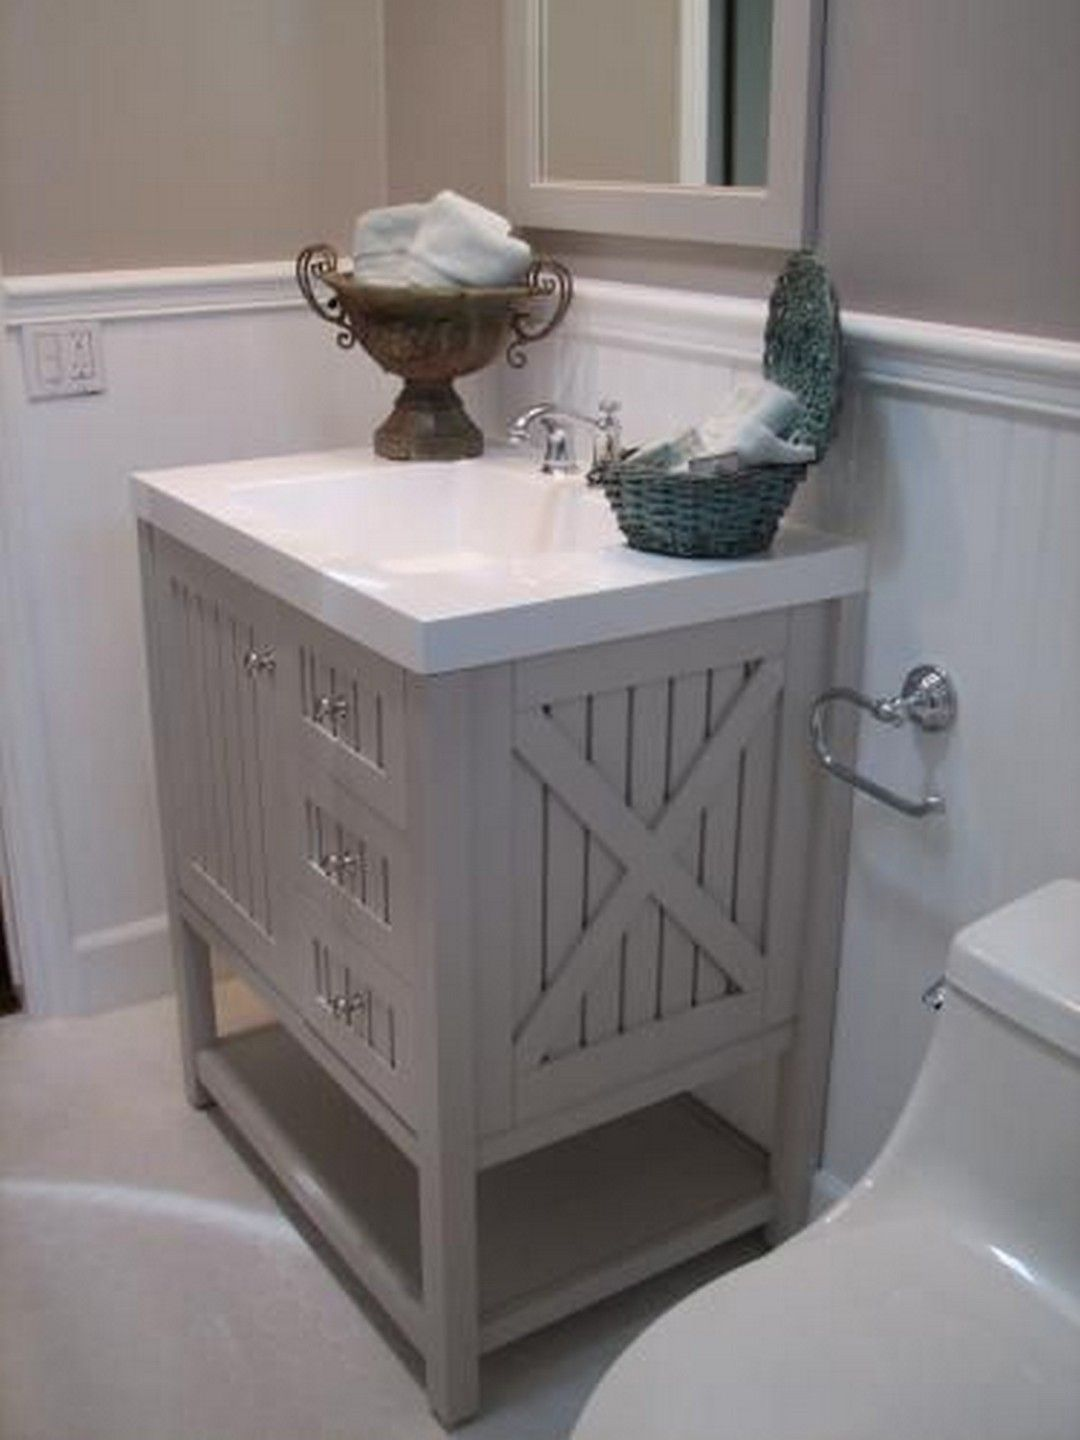 Martha Stewart Bathroom Ideas That Will Upgrade Your Ordinary Goodnewsarchitecture Furniture Bedroom Layout Inspiration